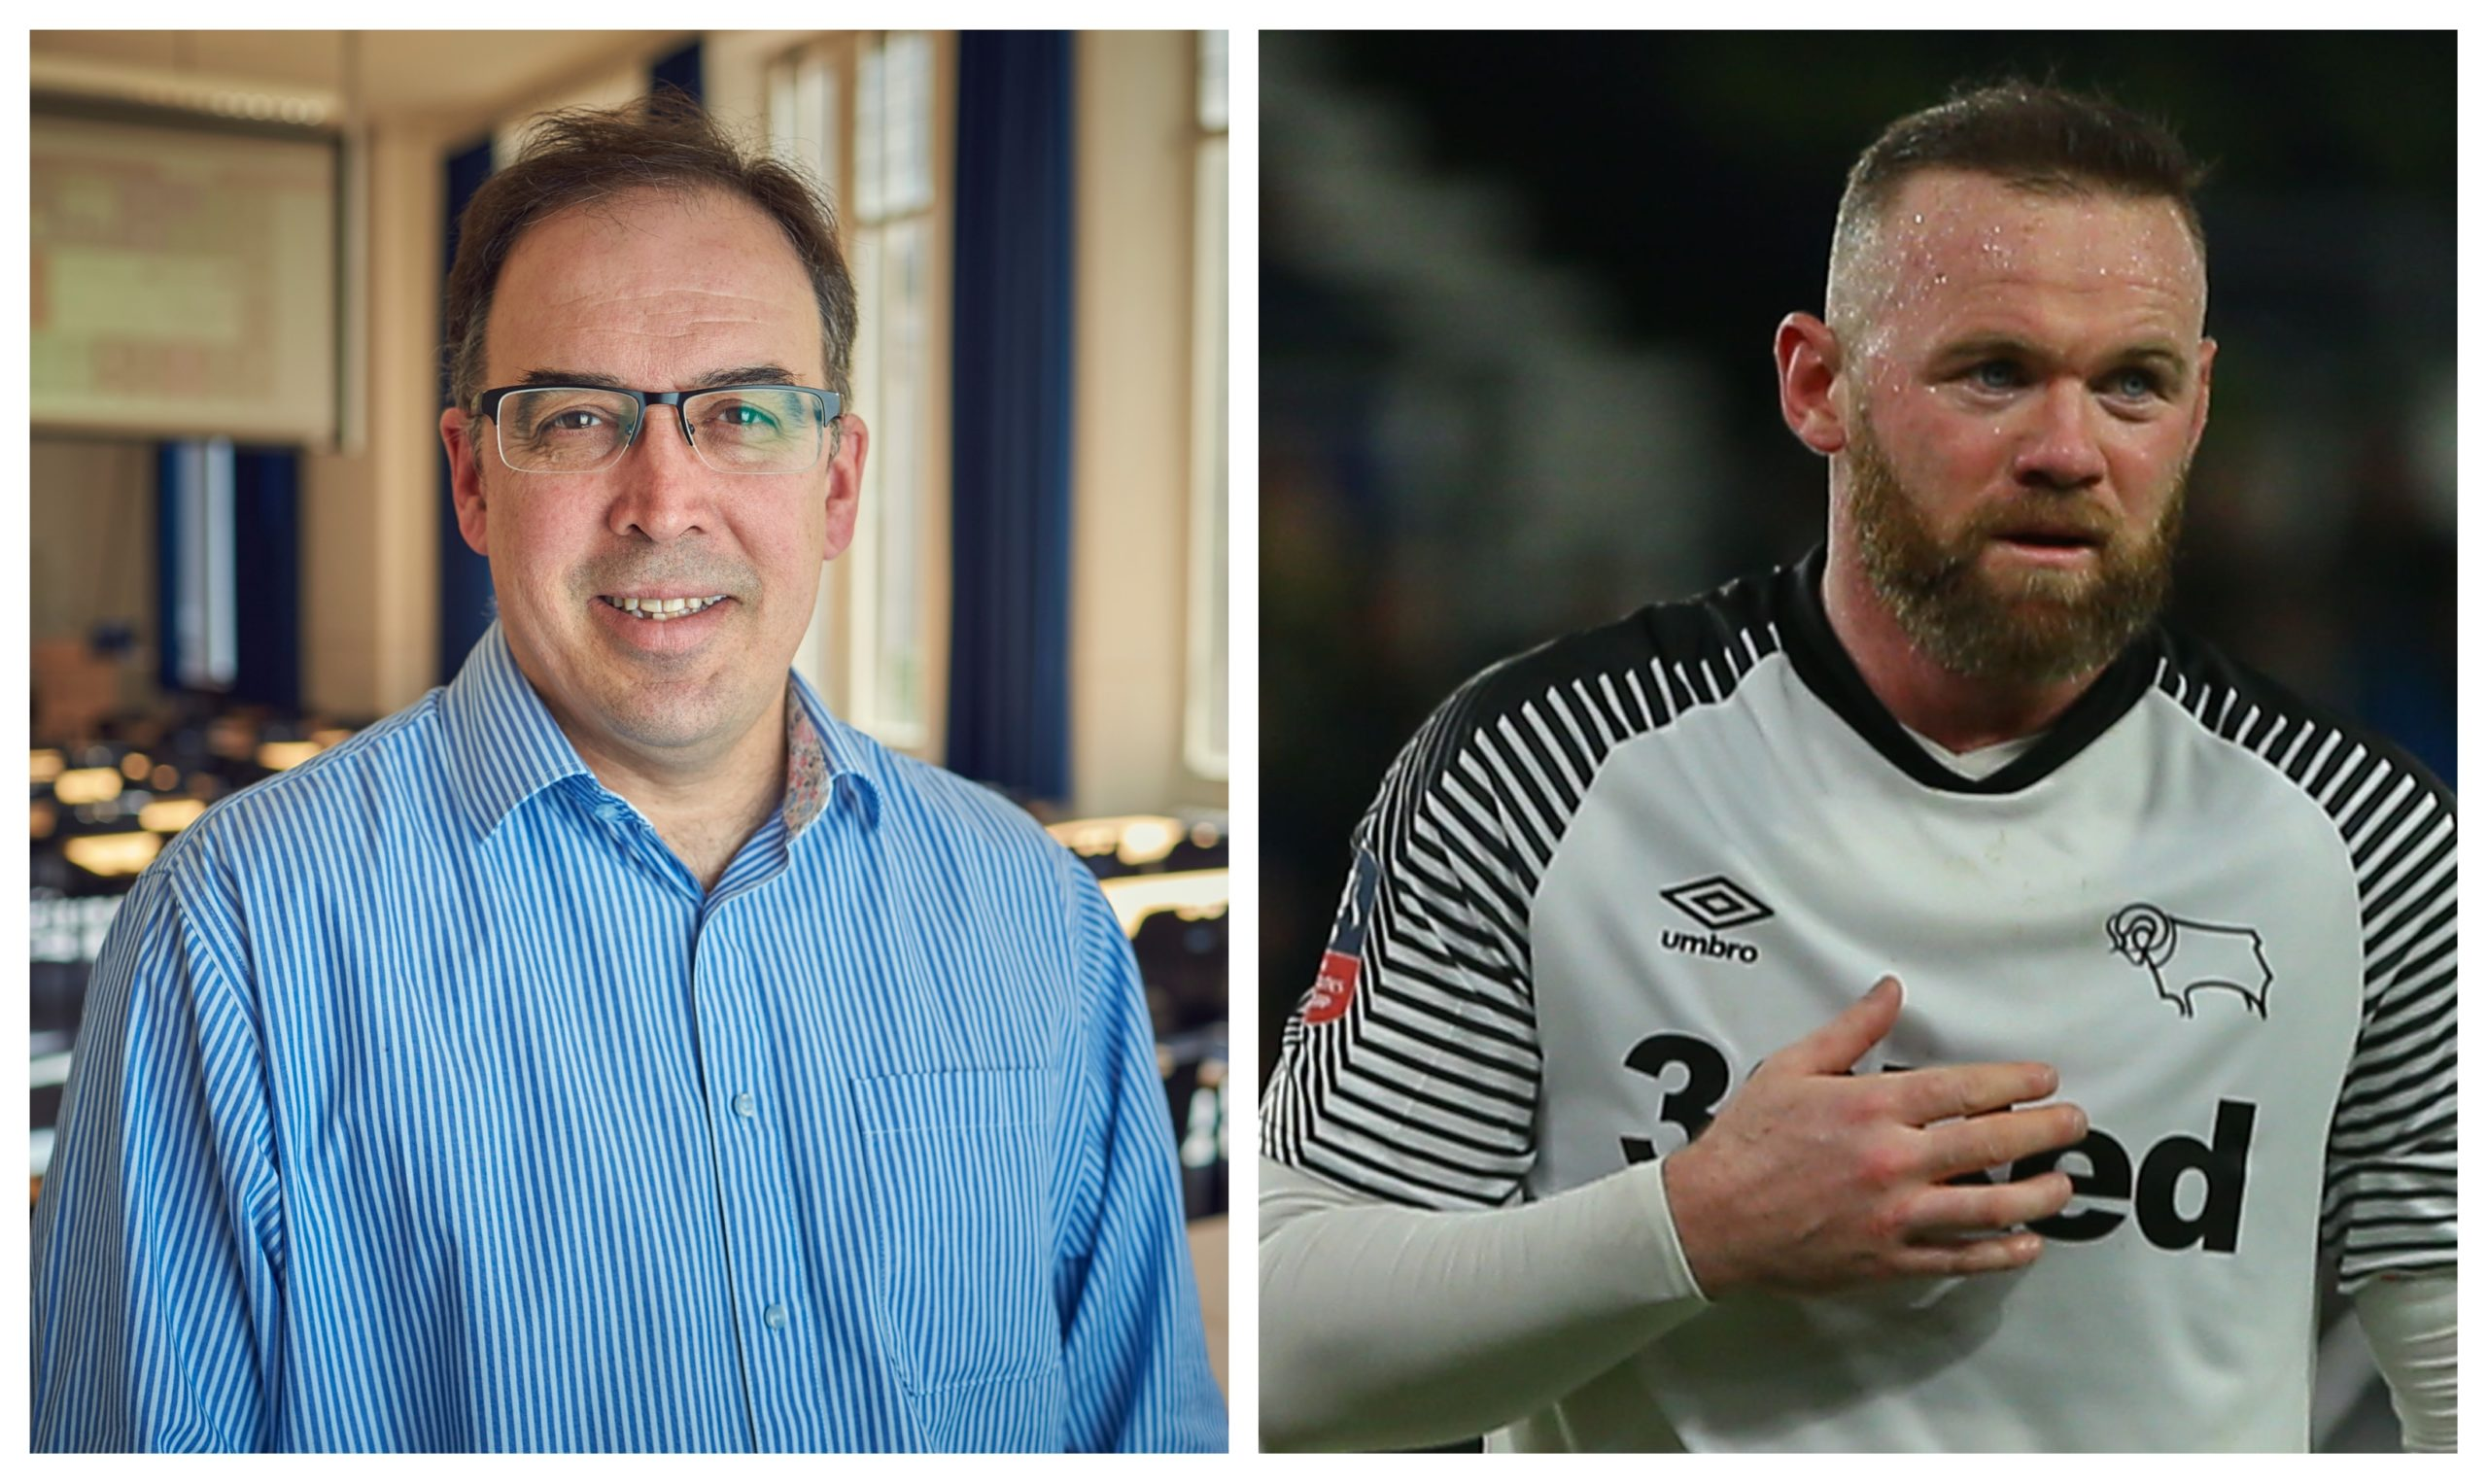 Prof David Lavallee says top sports stars could shun clubs who don't prioritise player welfare. Wayne Rooney, right, has also expressed concerns